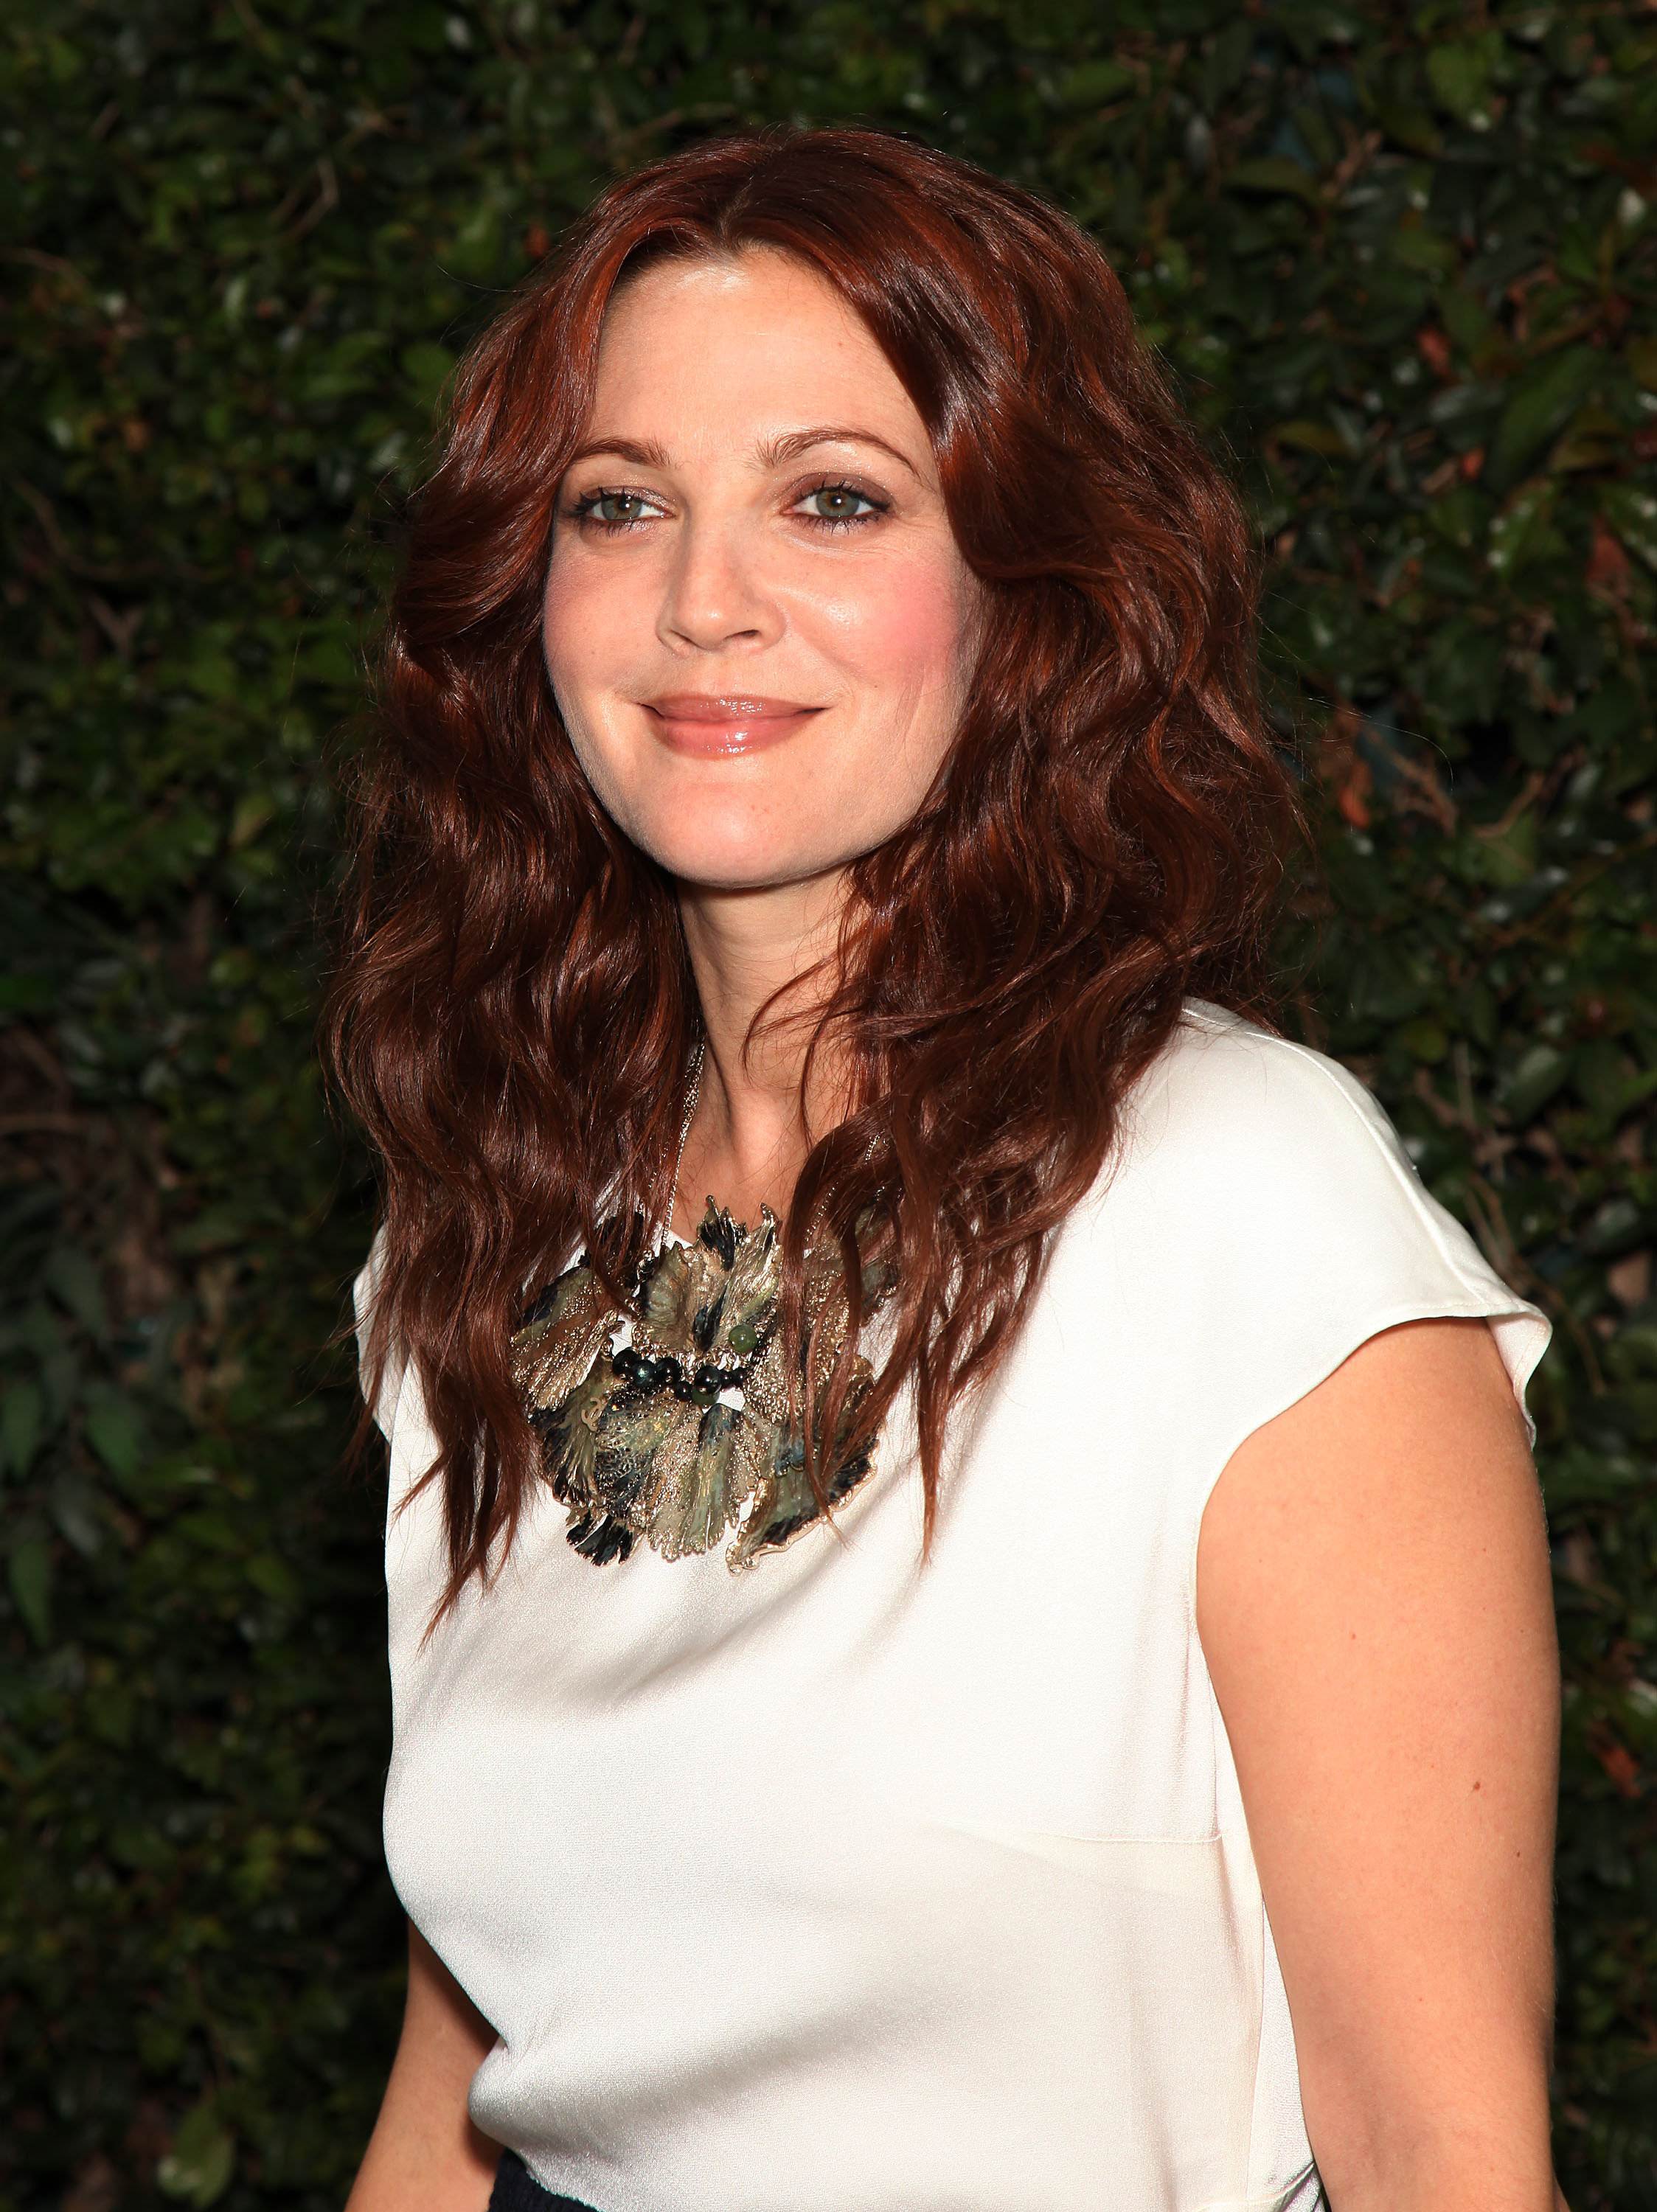 June 4, 2011 - Malibu, California, U.S. - DREW BARRYMORE arrives for the Chanel Celebration for our Oceans at a private home in Malibu, CA. (Credit Image: Lisa O'Connor/ZUMAPRESS.com)